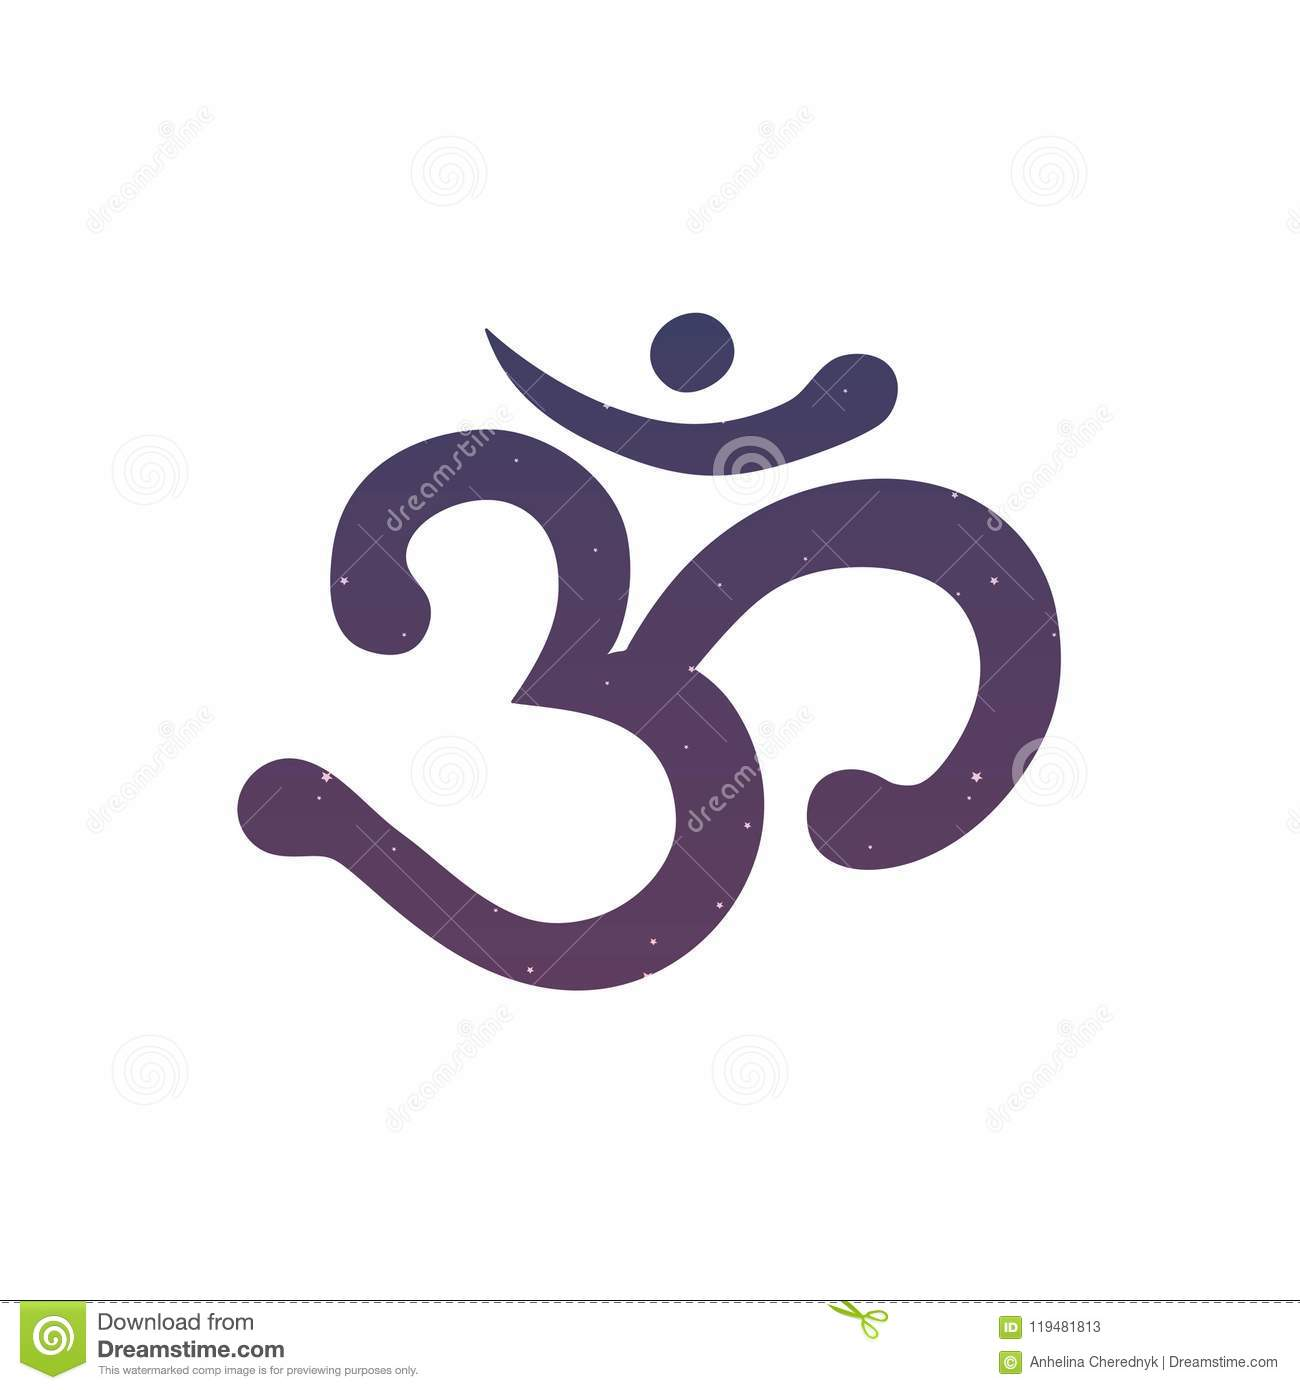 Om Aum Ohm India Sumbol Meditation Yoga Mantra Hinduism Buddhism